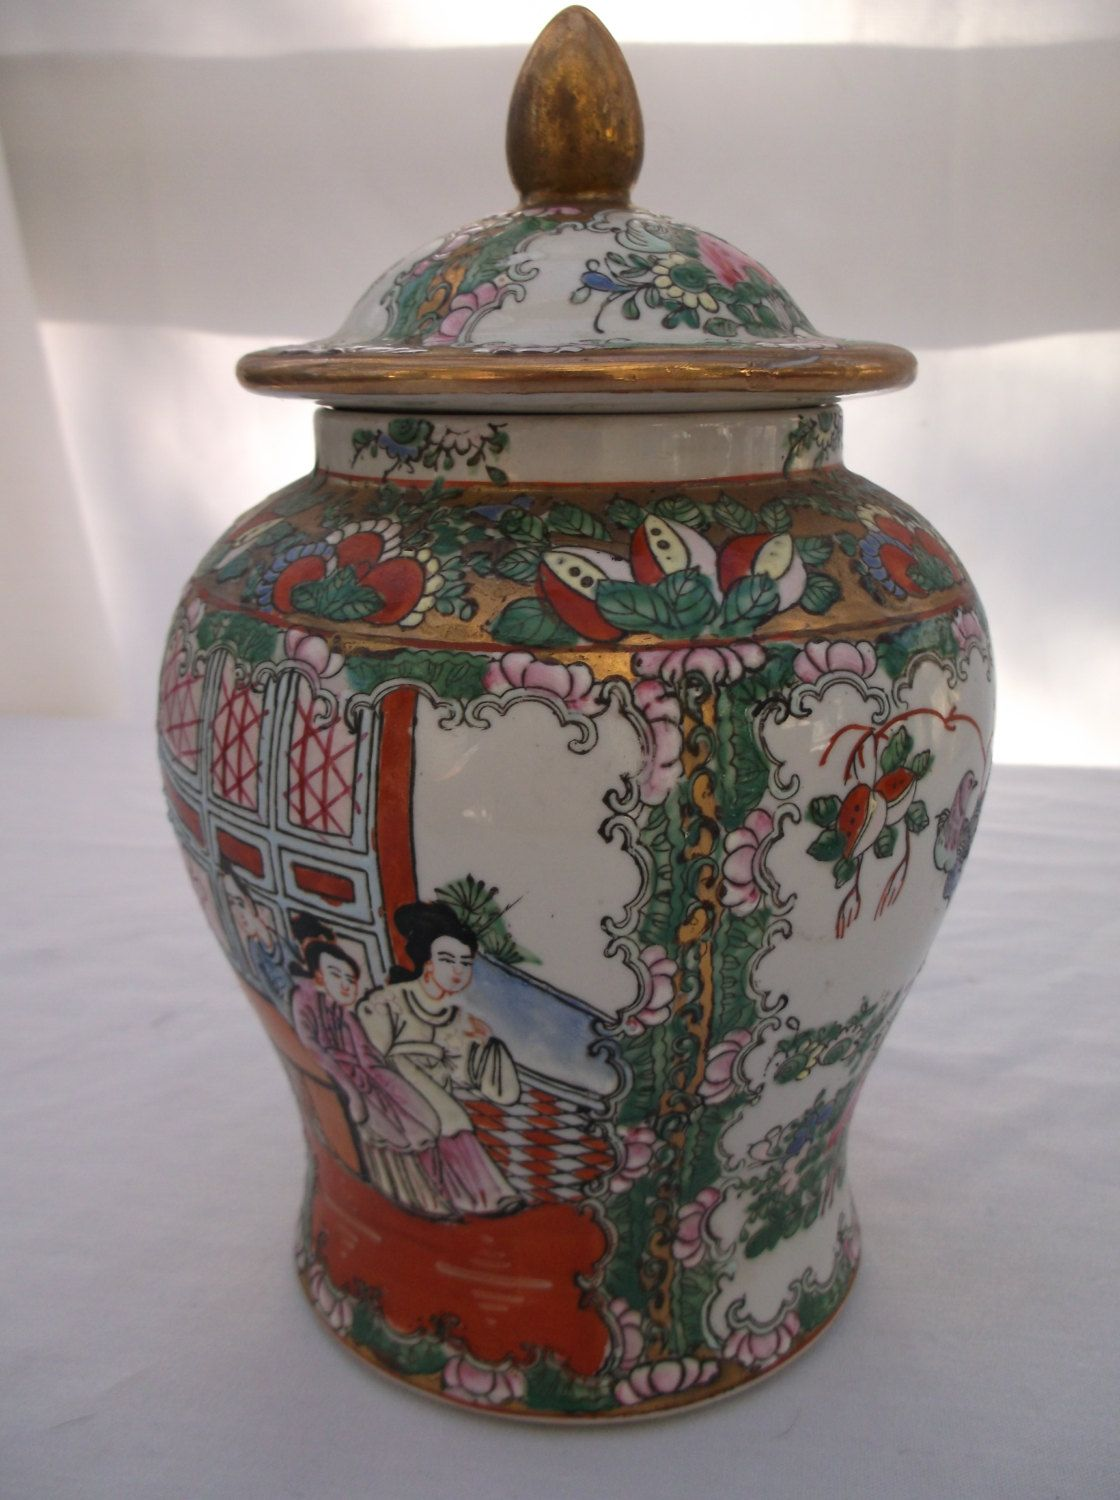 Temple Jar Chinese Famille Rose Canton Medallion Porcelain Mandrin Lid Urn Vase Hand Painted Oriental Home Decor Collectible 29 95 Via Etsy